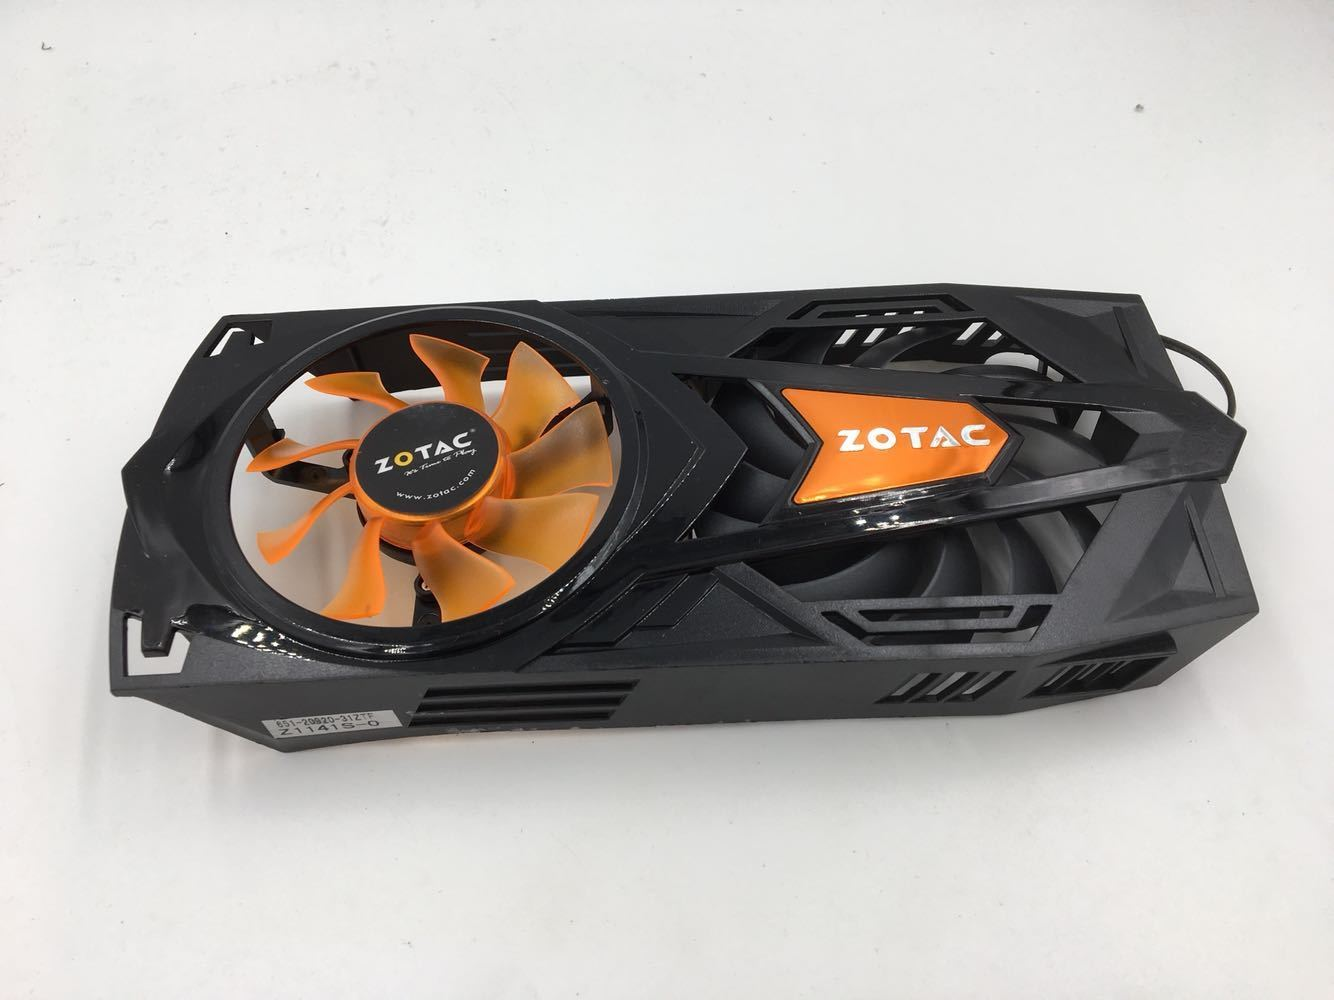 New ZOTAC GTX560-1G D5 GTX560-1GD5 2GD5 DTC HA 651-20920-31ZTF FD9015U12S 4Pin Destroyer Graphics Card Cooling Fan